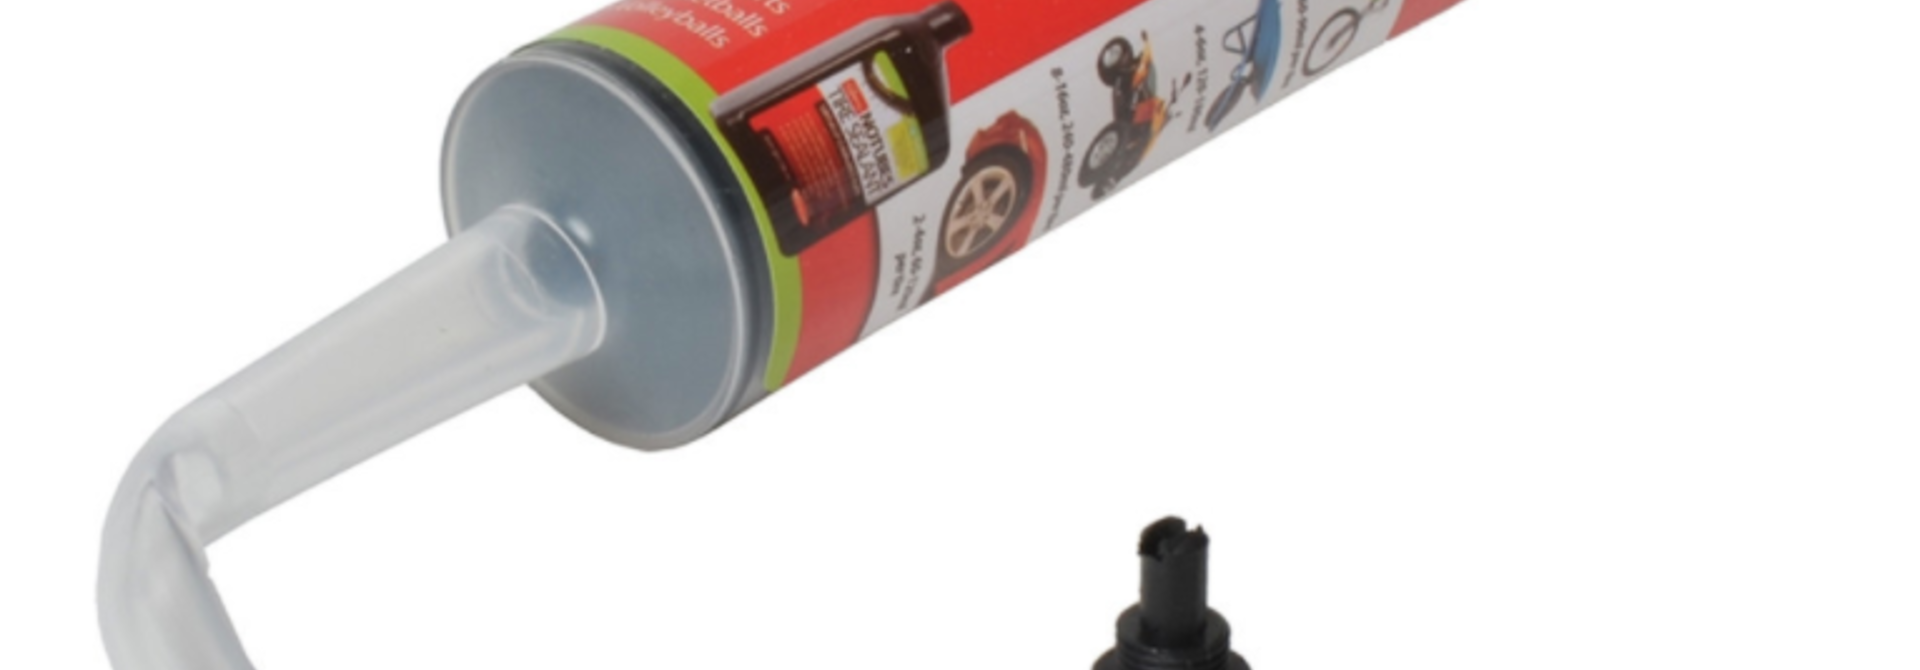 Stan's No Tubes Sealant Injector